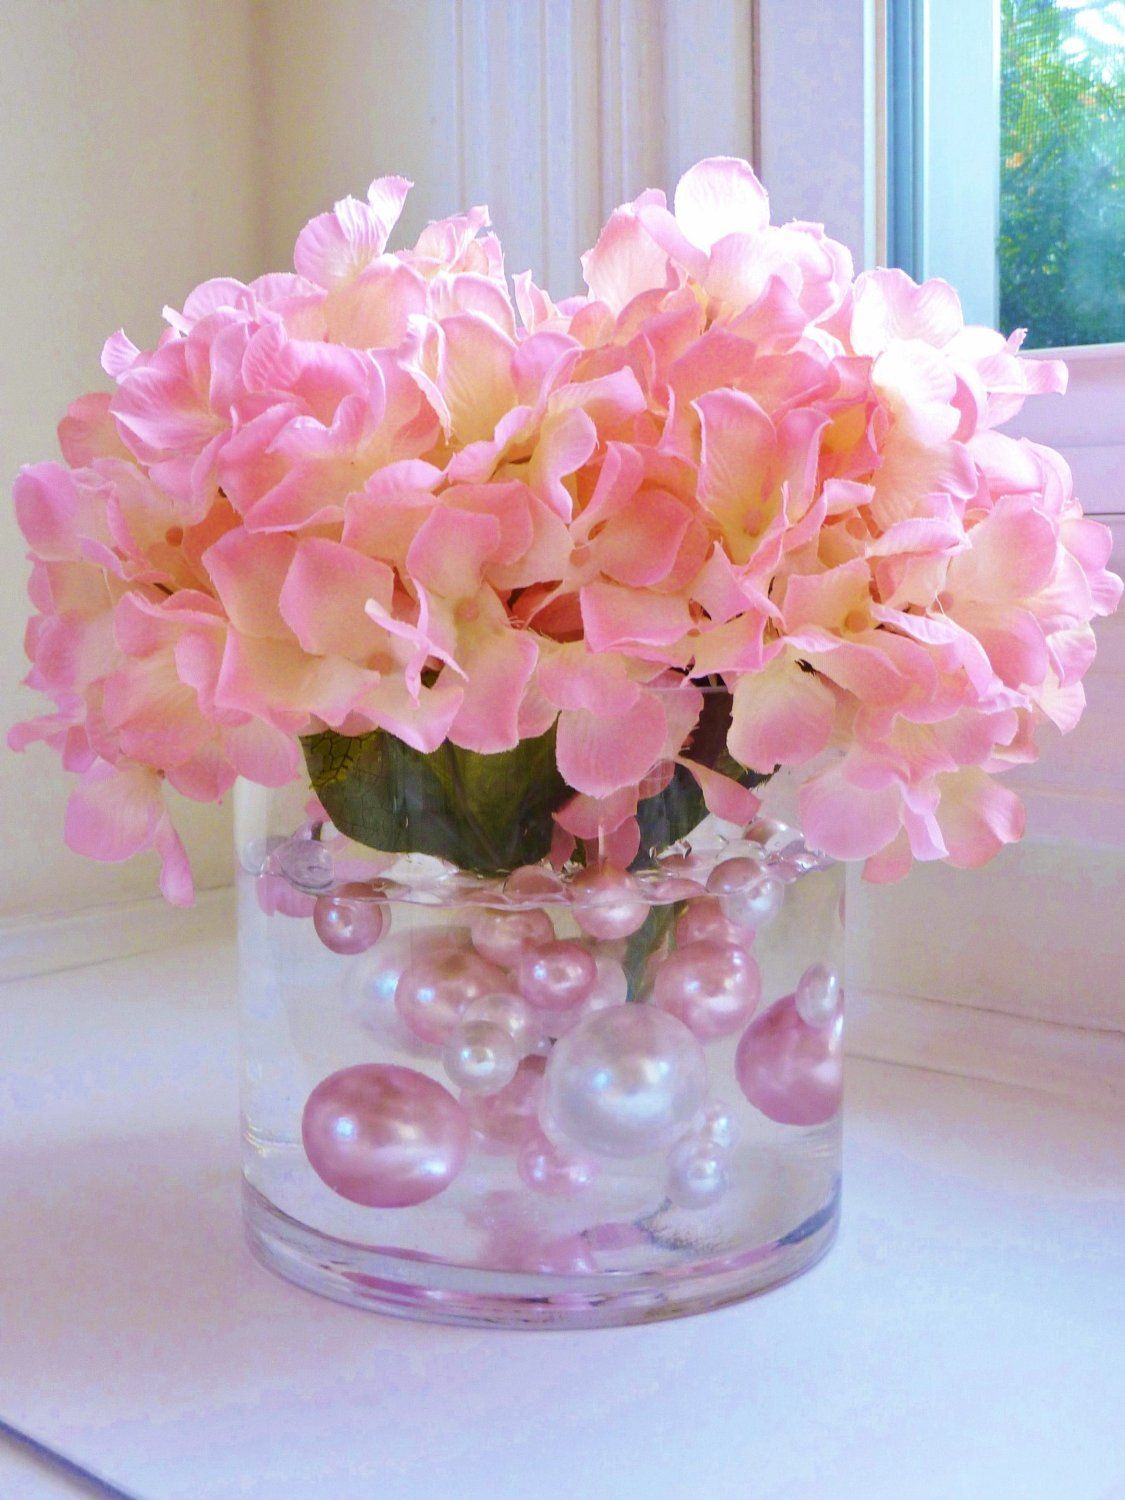 Amazon unique vase fillers 80pc value pack jumbo light amazon unique vase fillers 80pc value pack jumbo light pink pearls reviewsmspy